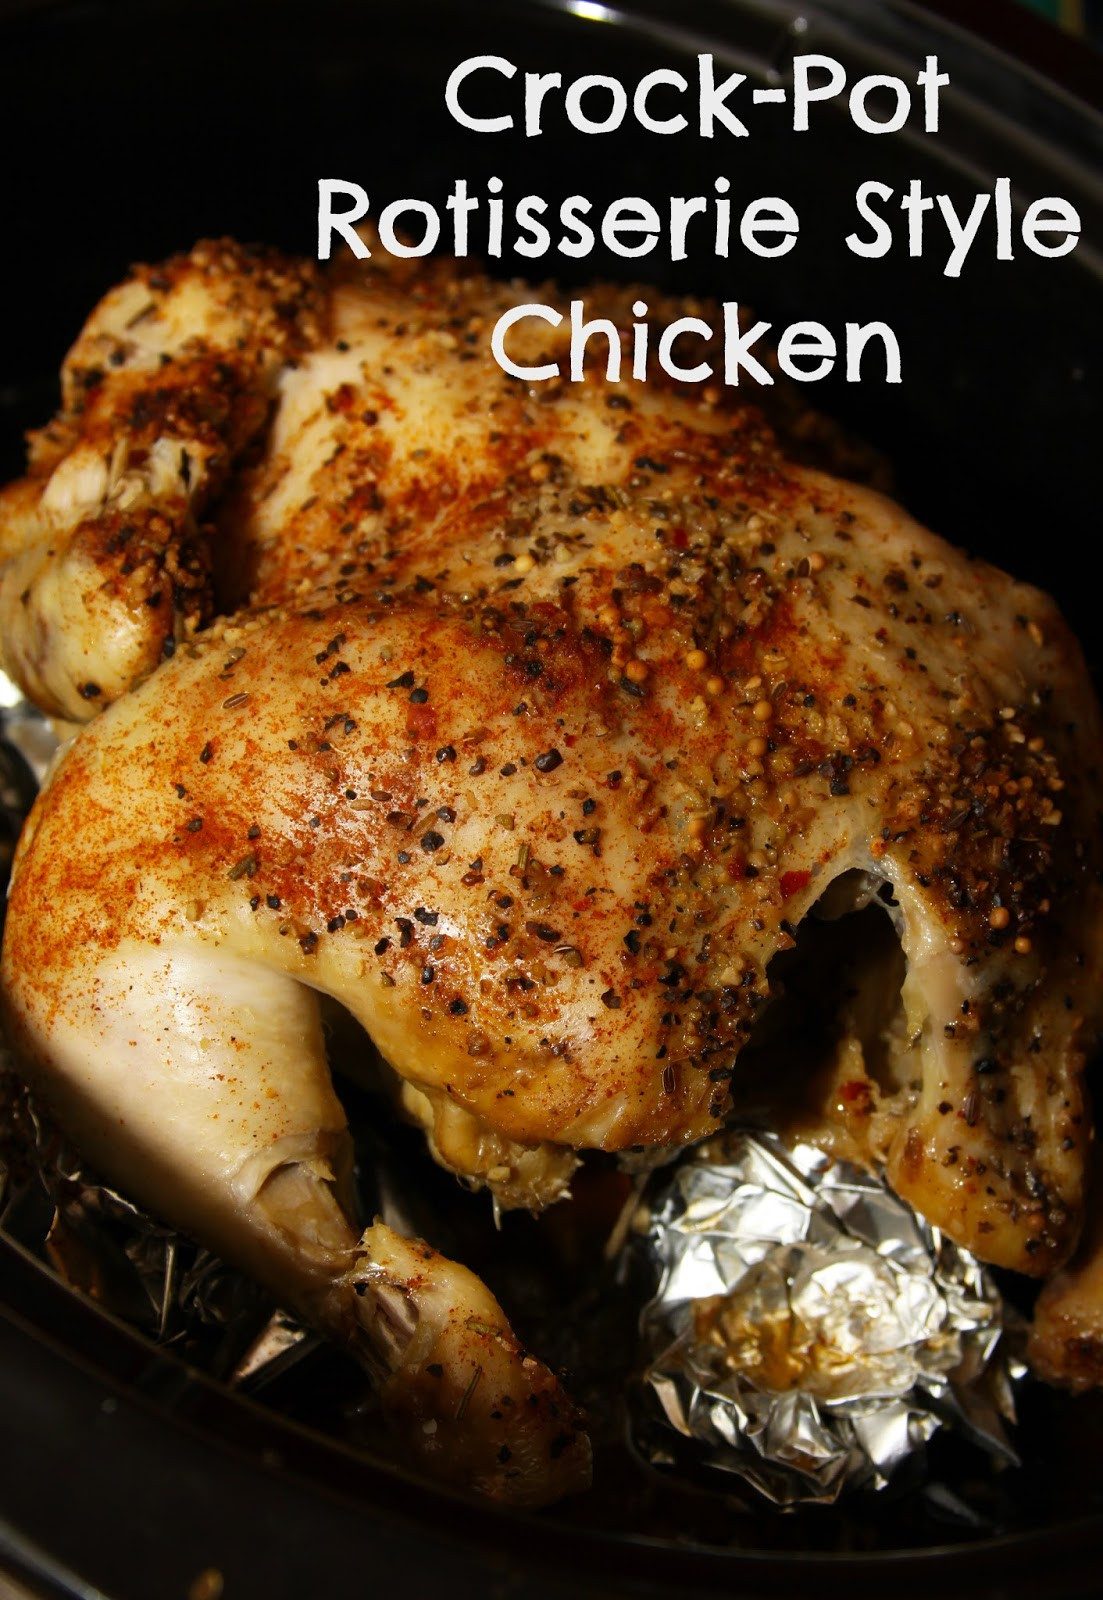 Whole Chicken Crock Pot  For the Love of Food Crock Pot Rotisserie Style Chicken